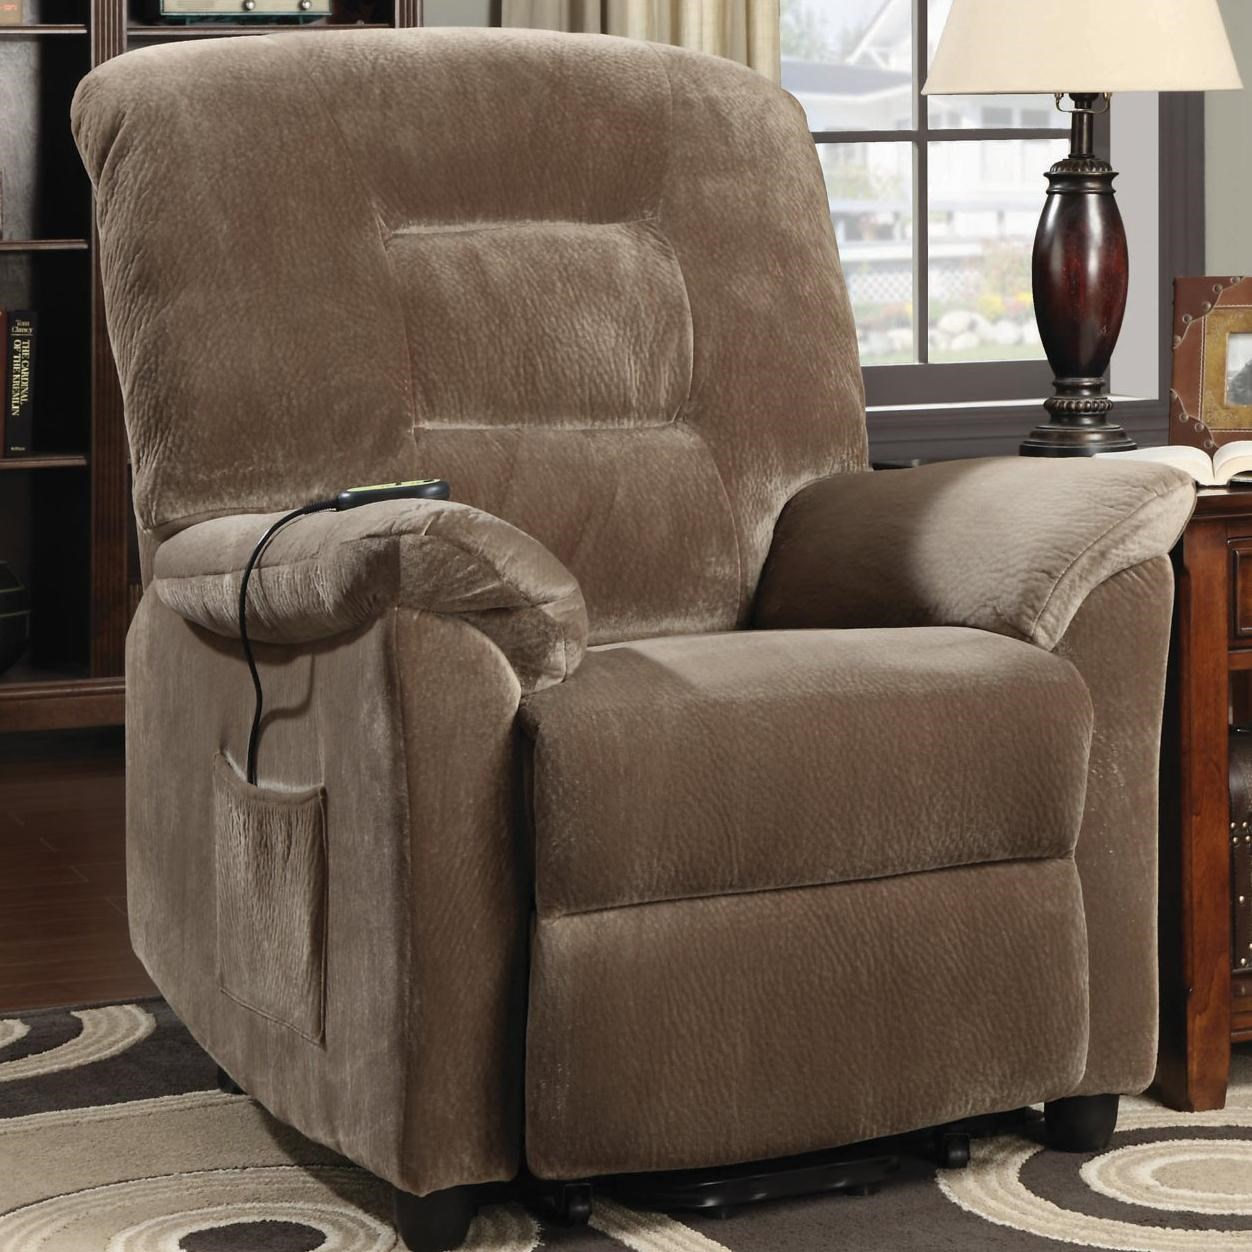 Coaster Recliners Casual Power Lift Recliner with Brown Sugar Upholstery - Coaster Fine Furniture : coaster power lift recliner - islam-shia.org